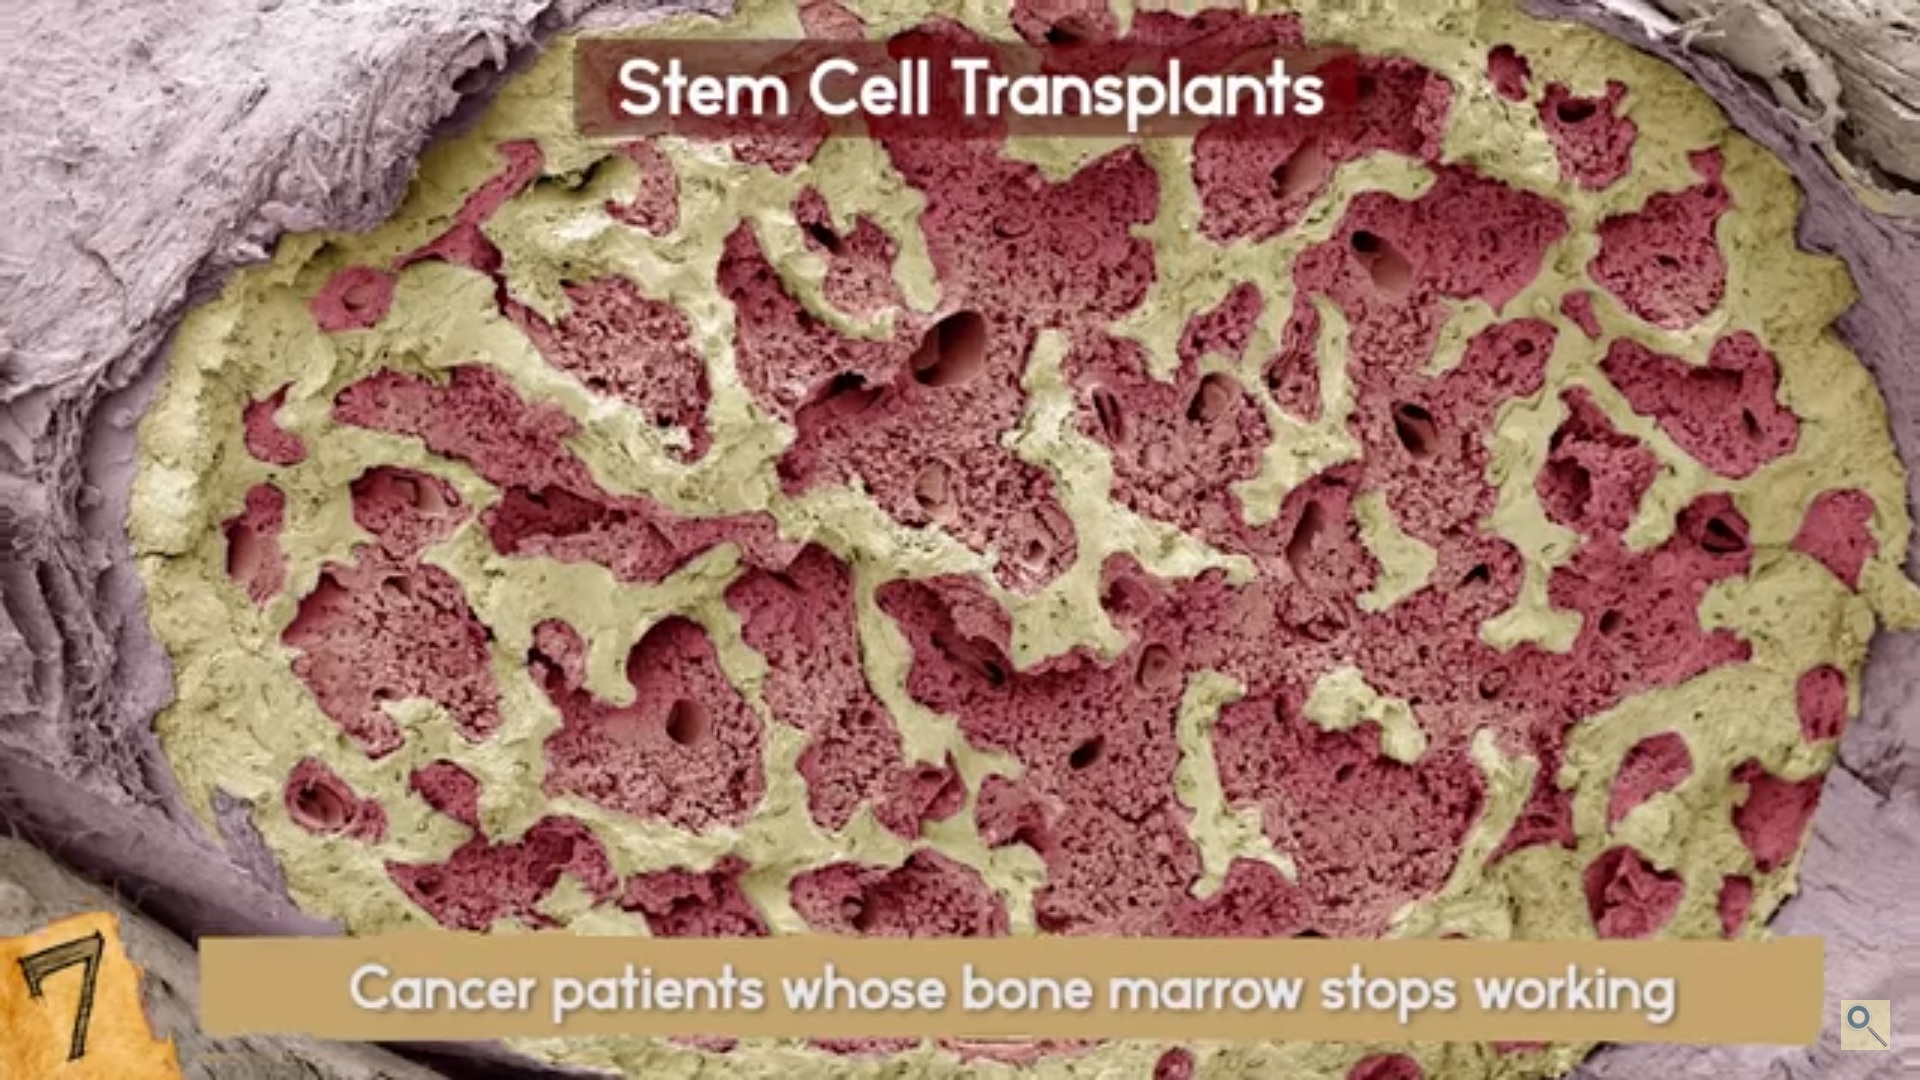 Stem Cells developments